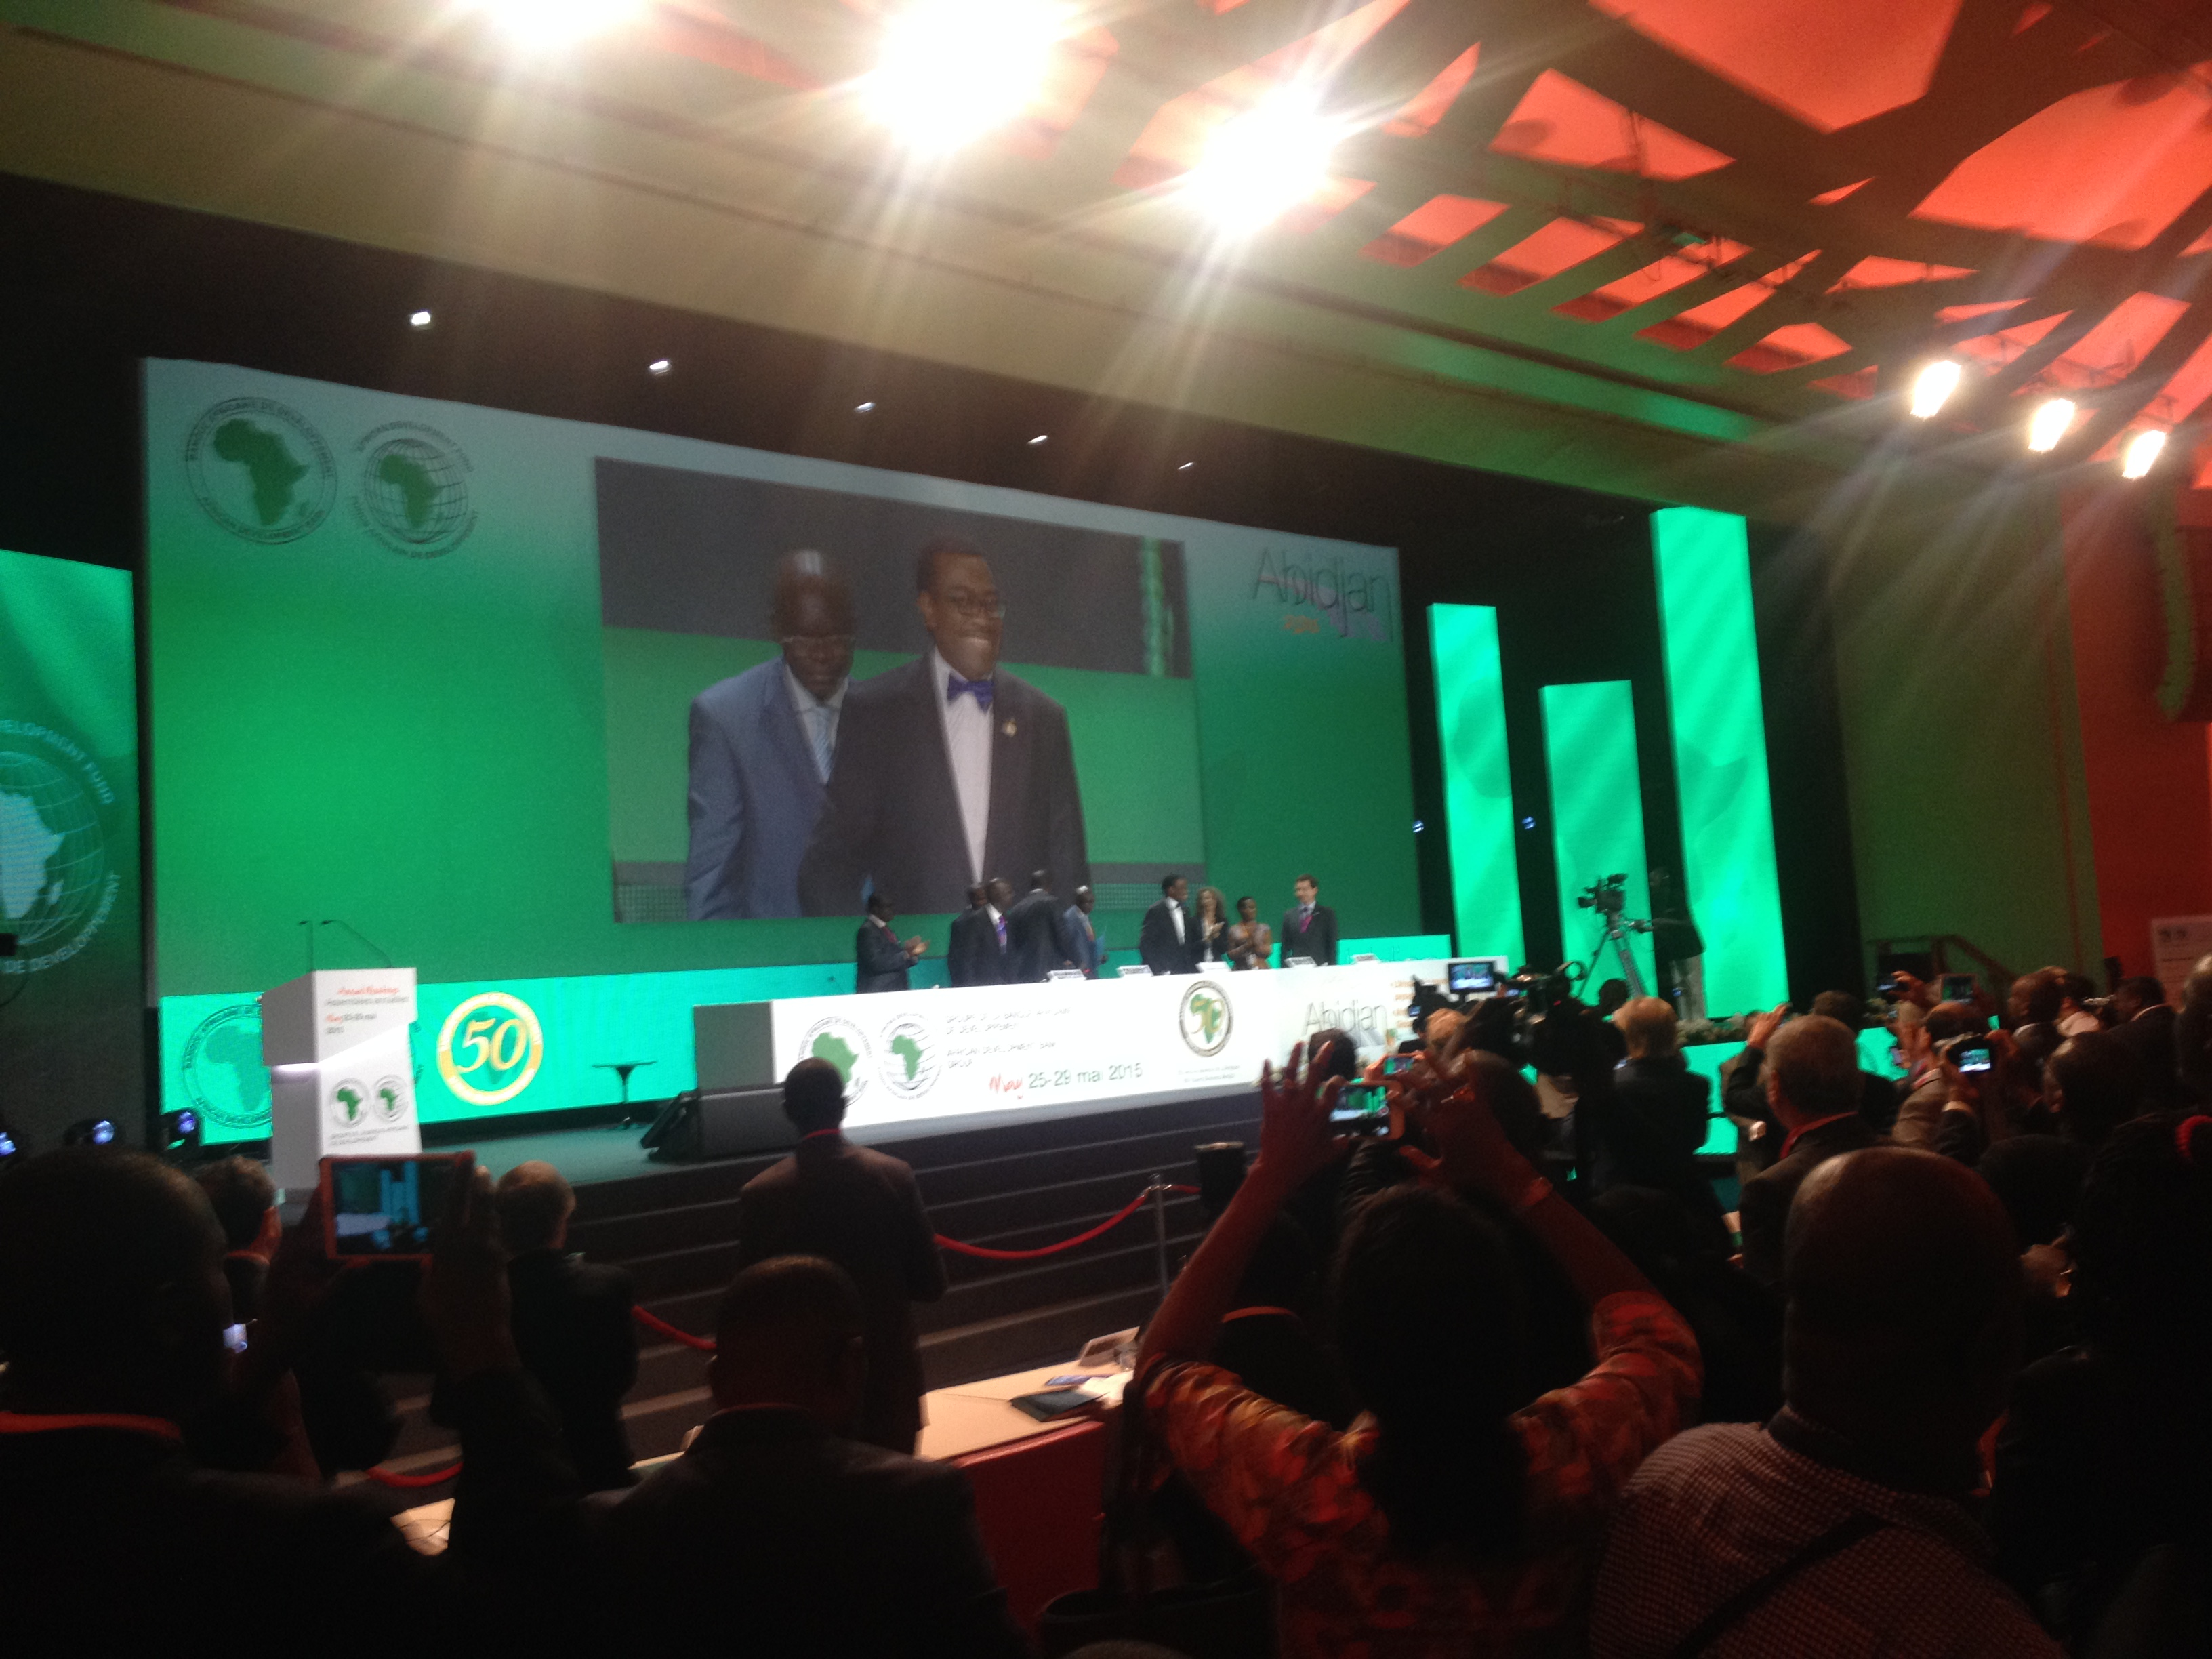 Akinwumi Adesina, Nigeria's Minister for Agriculture and Rural Development, was elected to be the new president of the African Development Bank. at the annual meeting in Abidjan